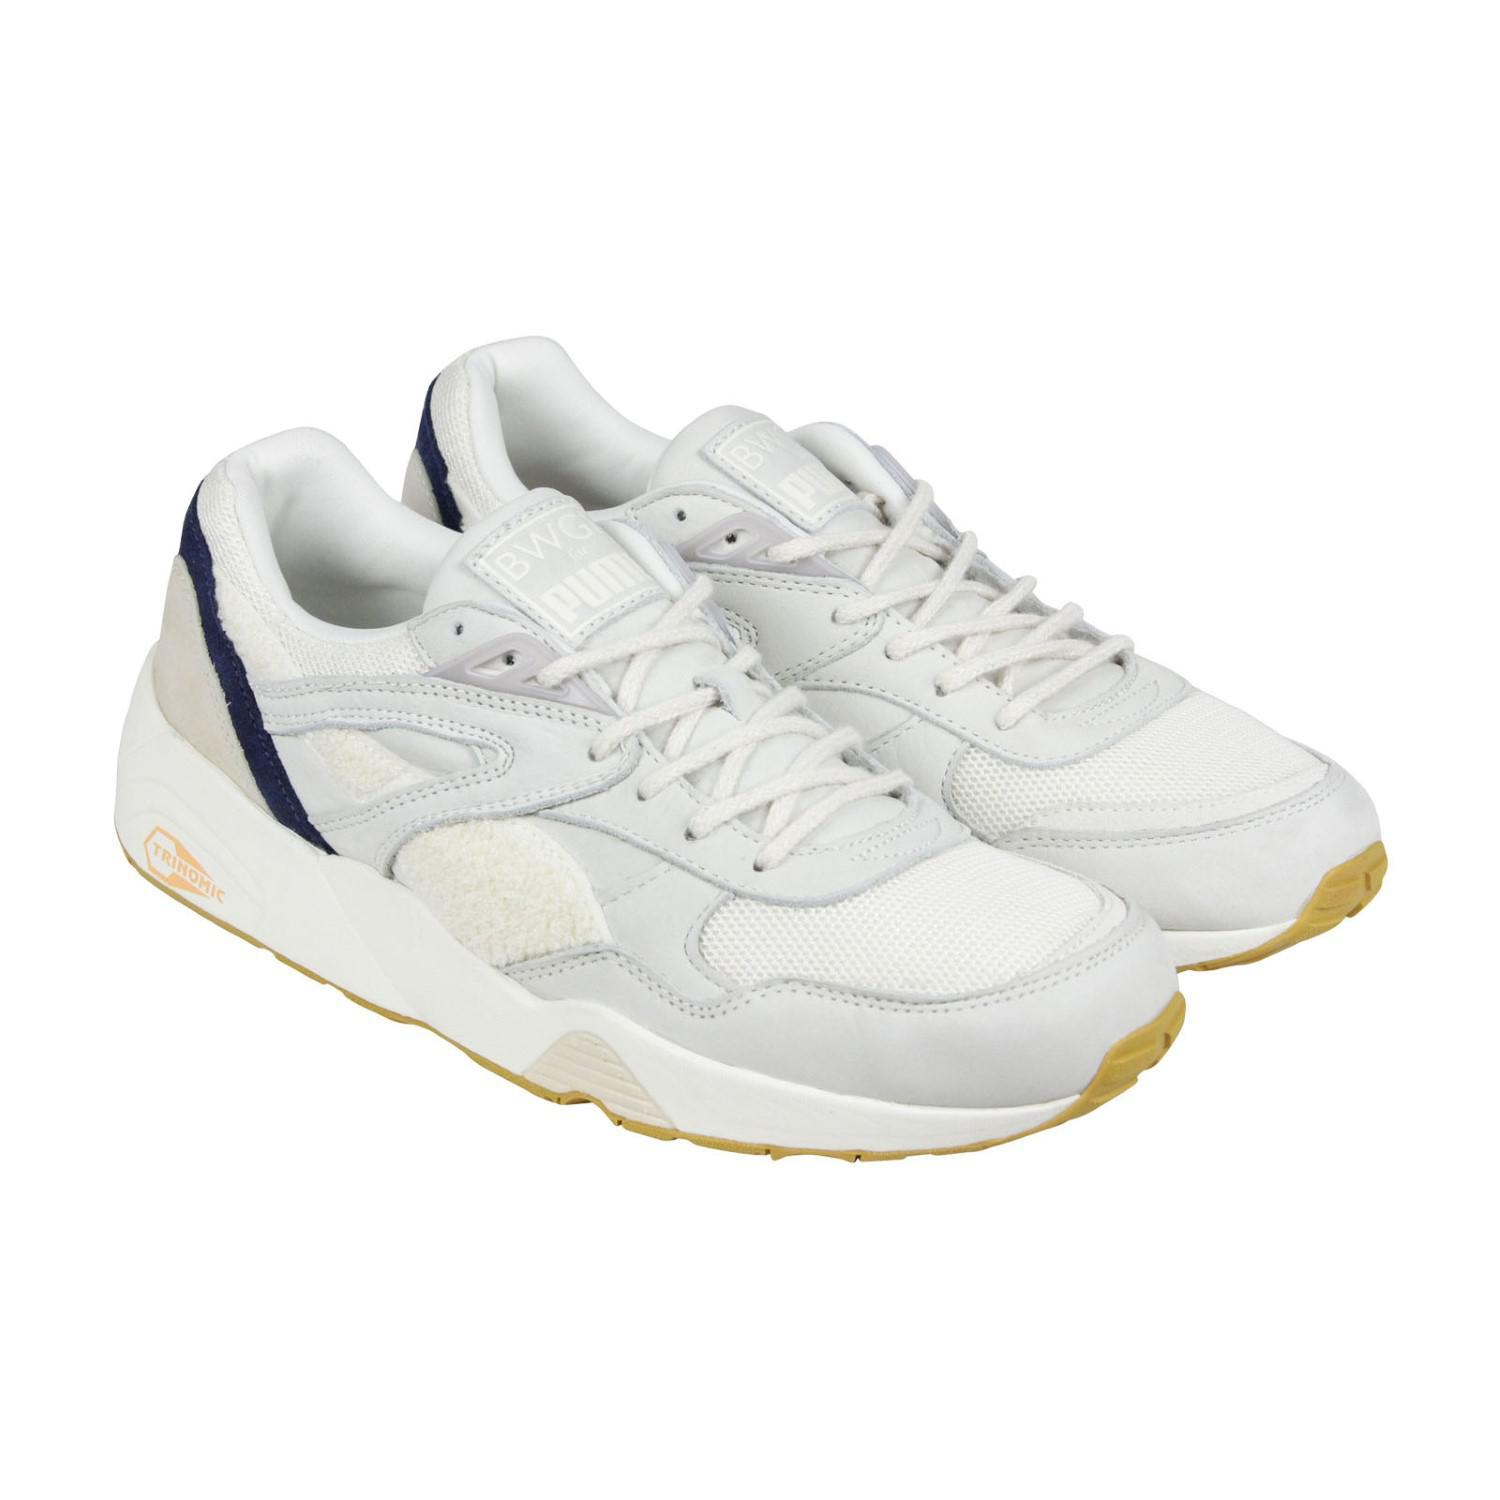 49a3163e3d3f Lyst - PUMA R698 X Bwgh Pristine Lace Up Sneakers in White for Men